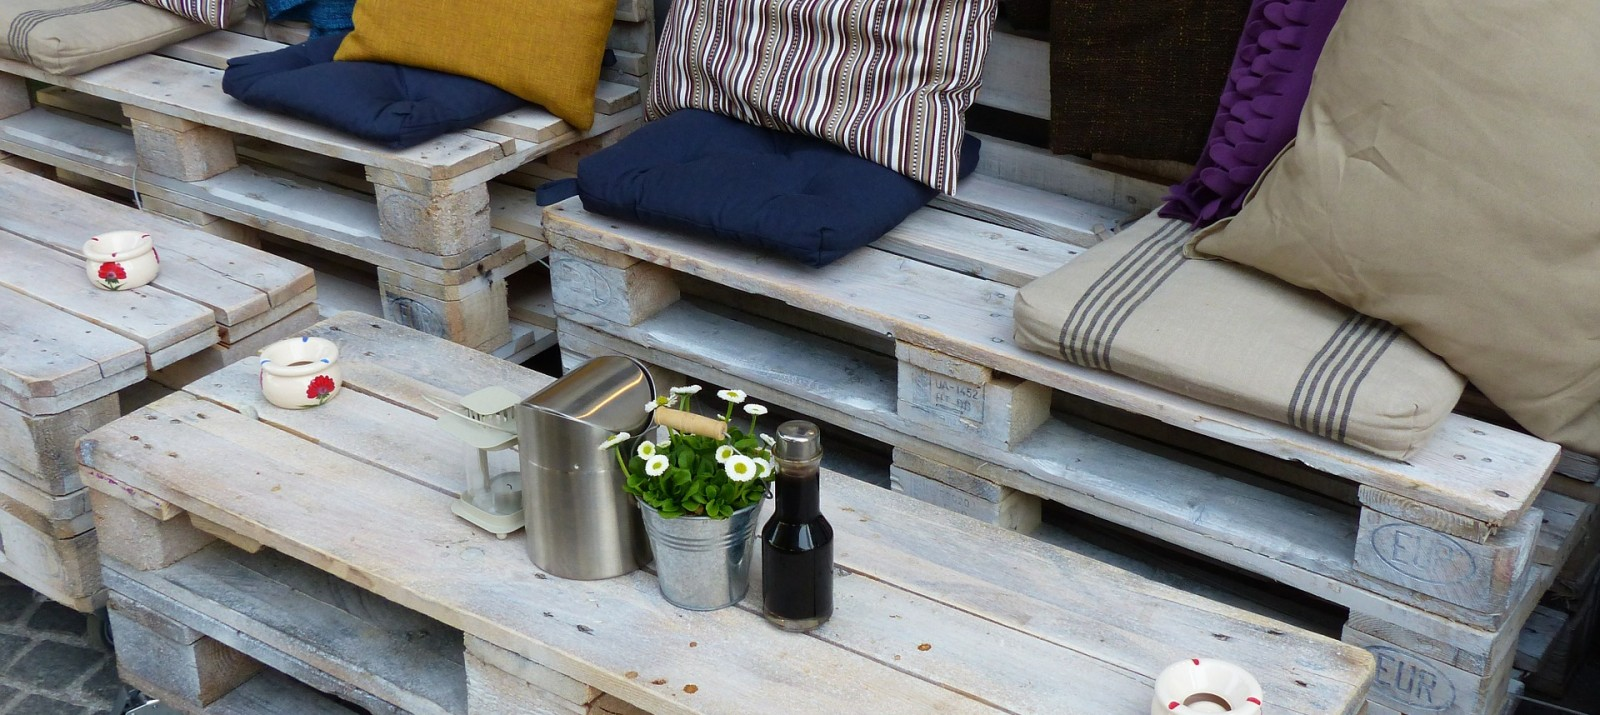 11 diy wood pallet ideas to make space in your apartment diy wood pallet patio furniture with colorful cushions and storage space solutioingenieria Choice Image